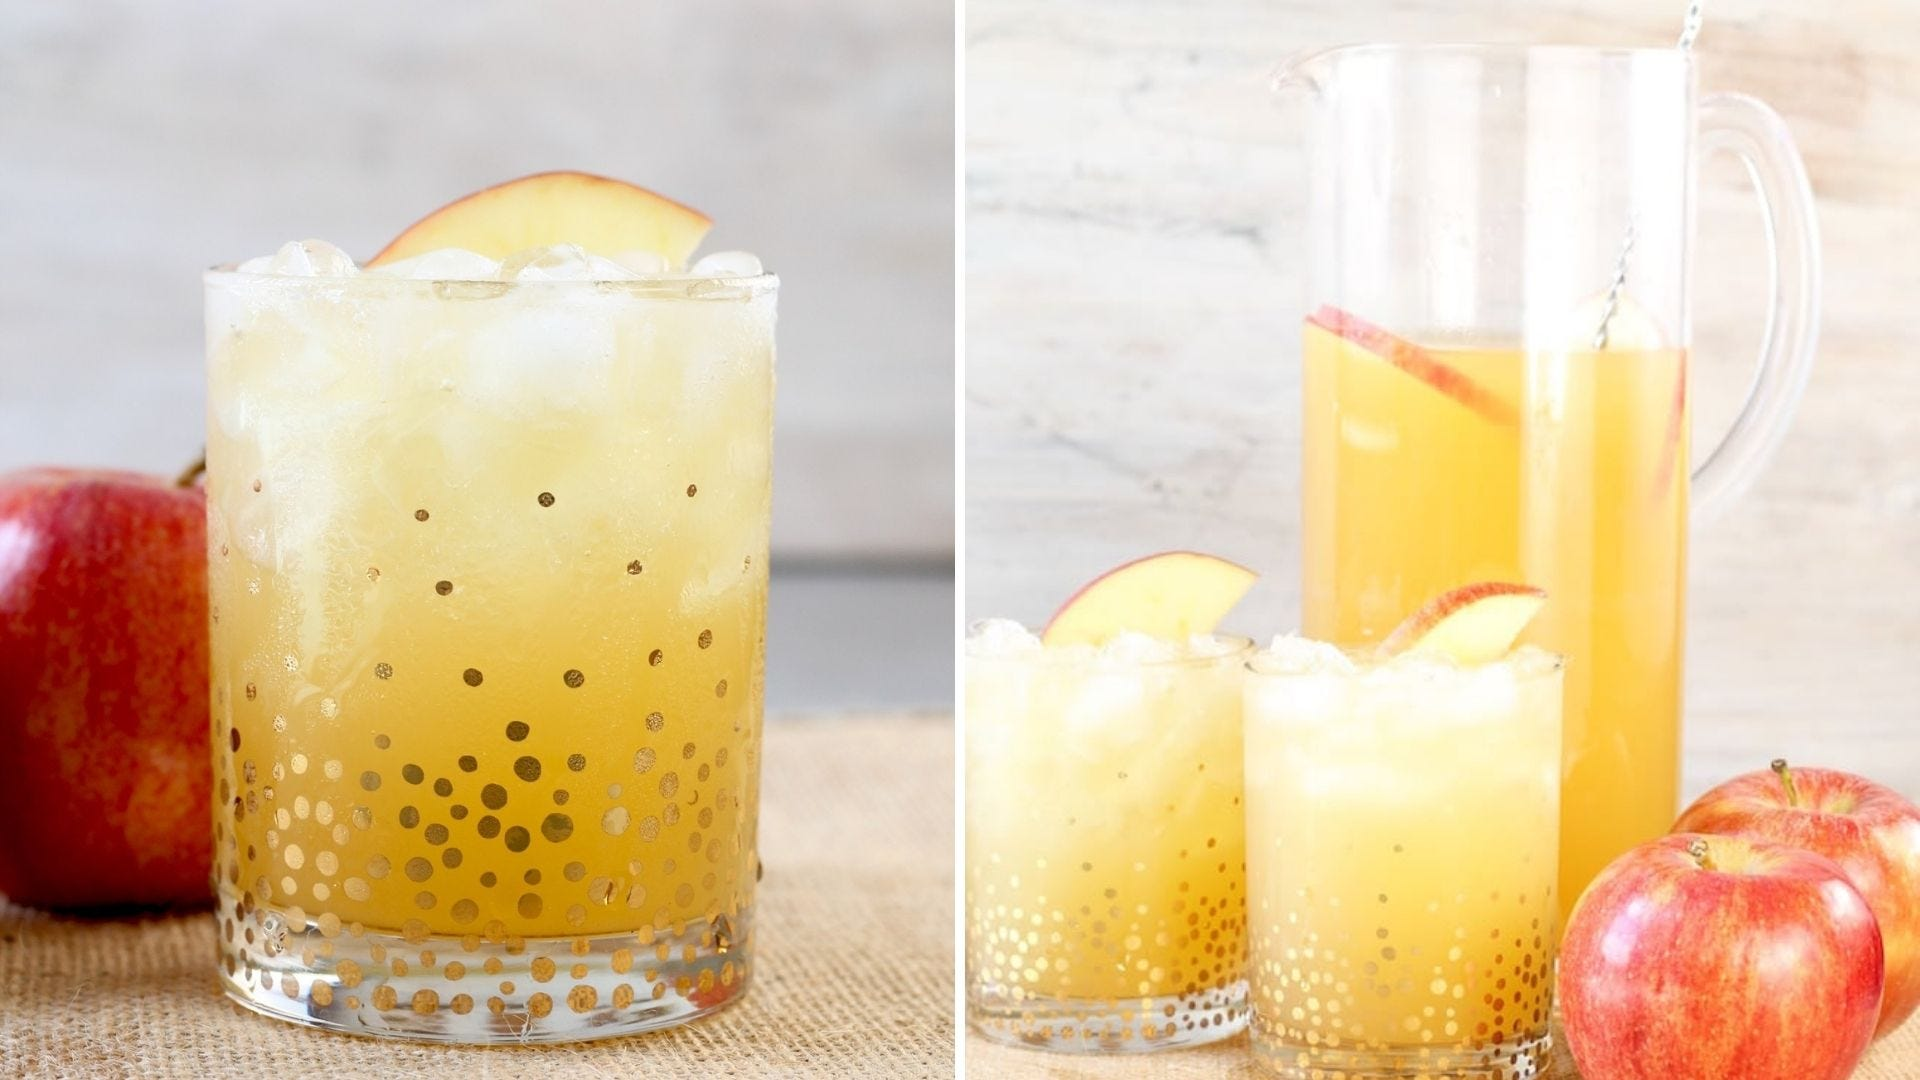 Festive drink glasses with a yellow punch inside